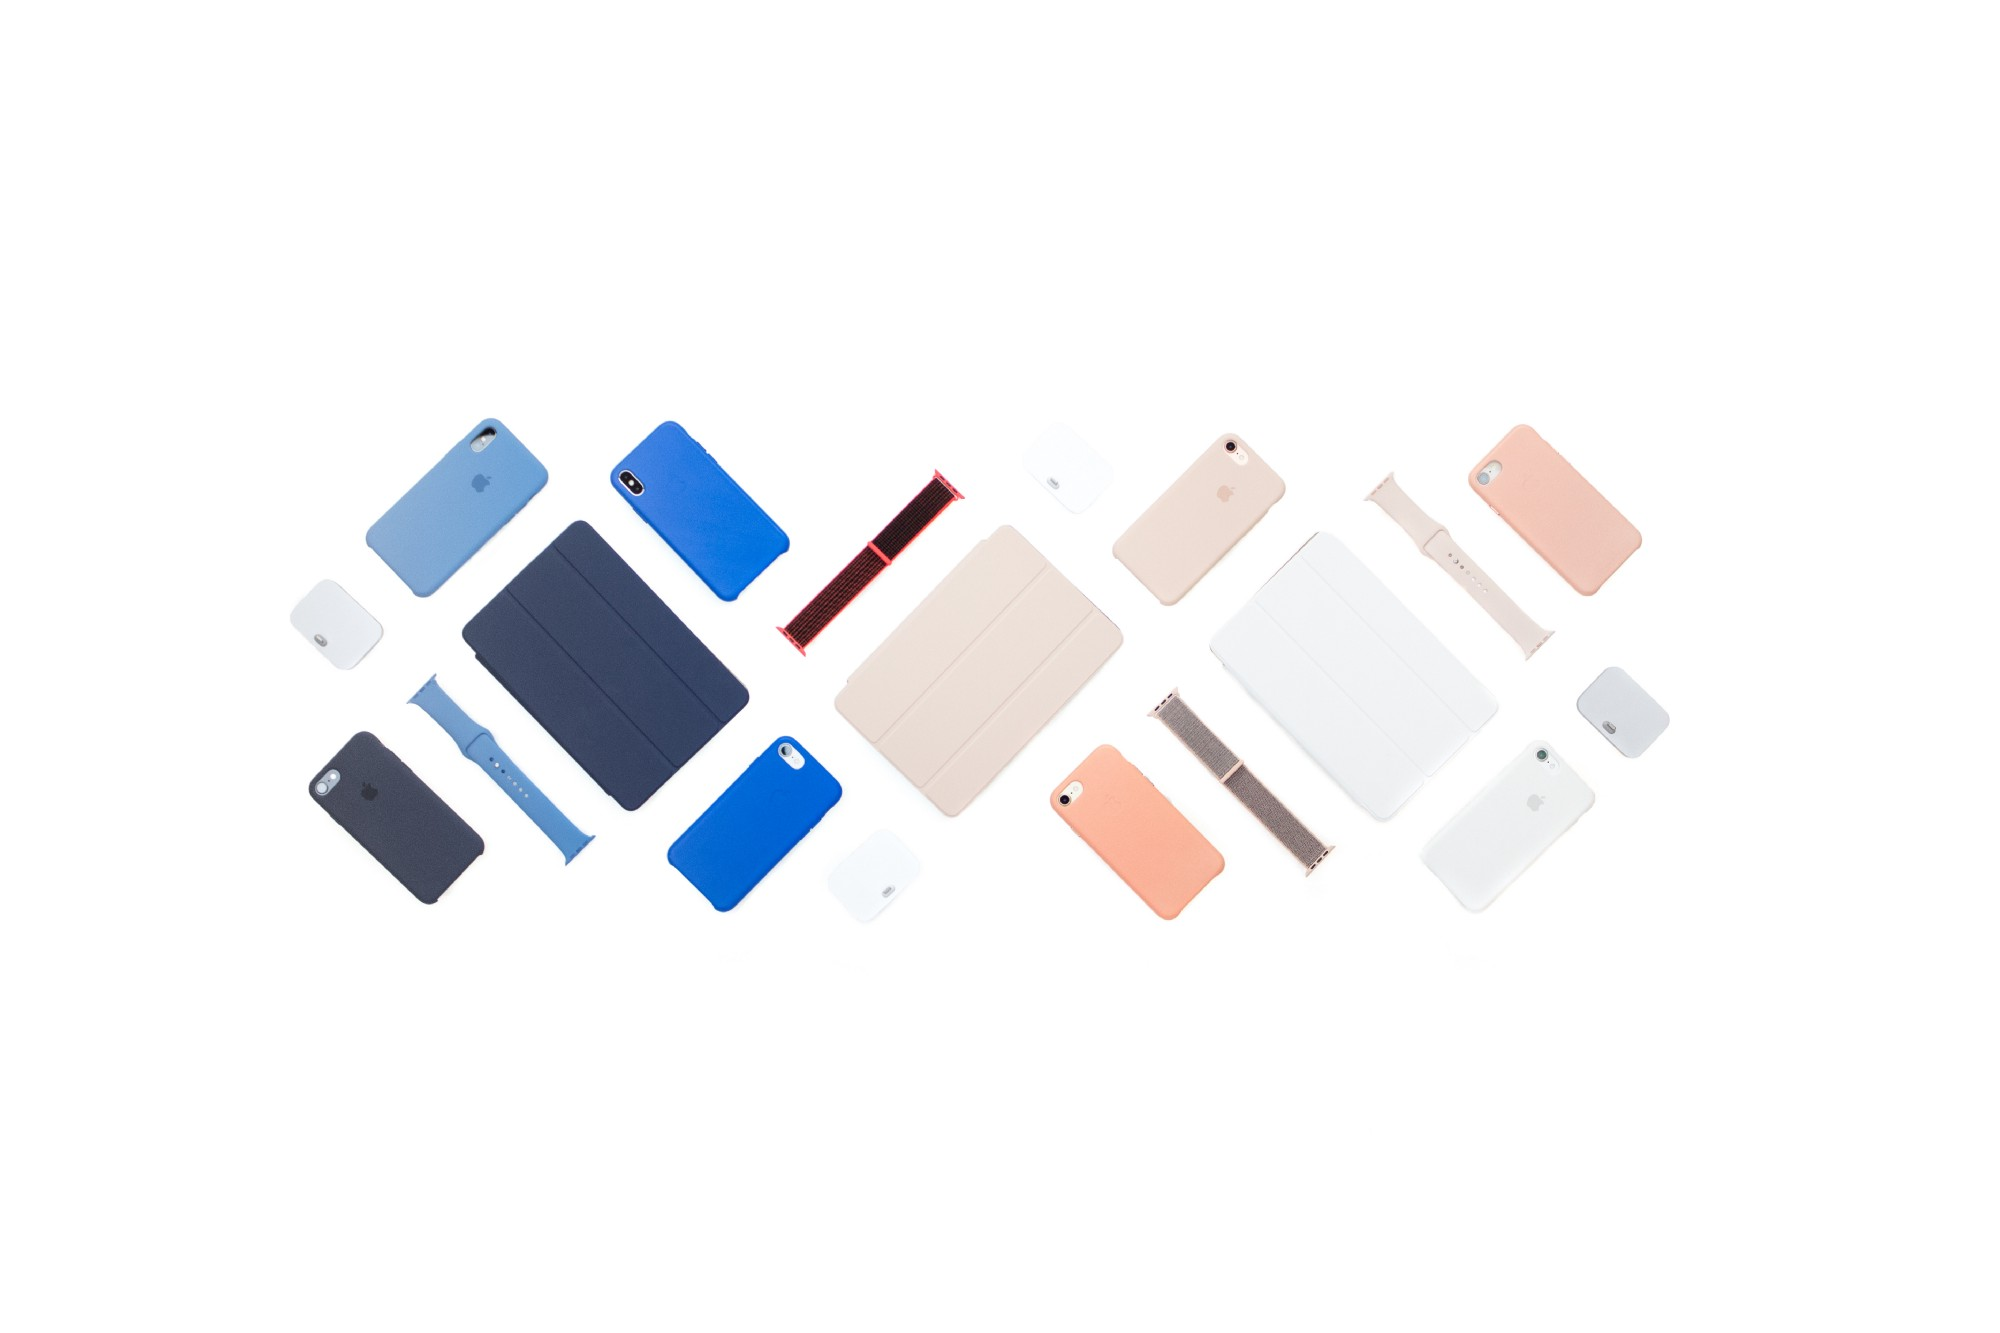 E.g., A grid of iphones, ipads, and watch bands